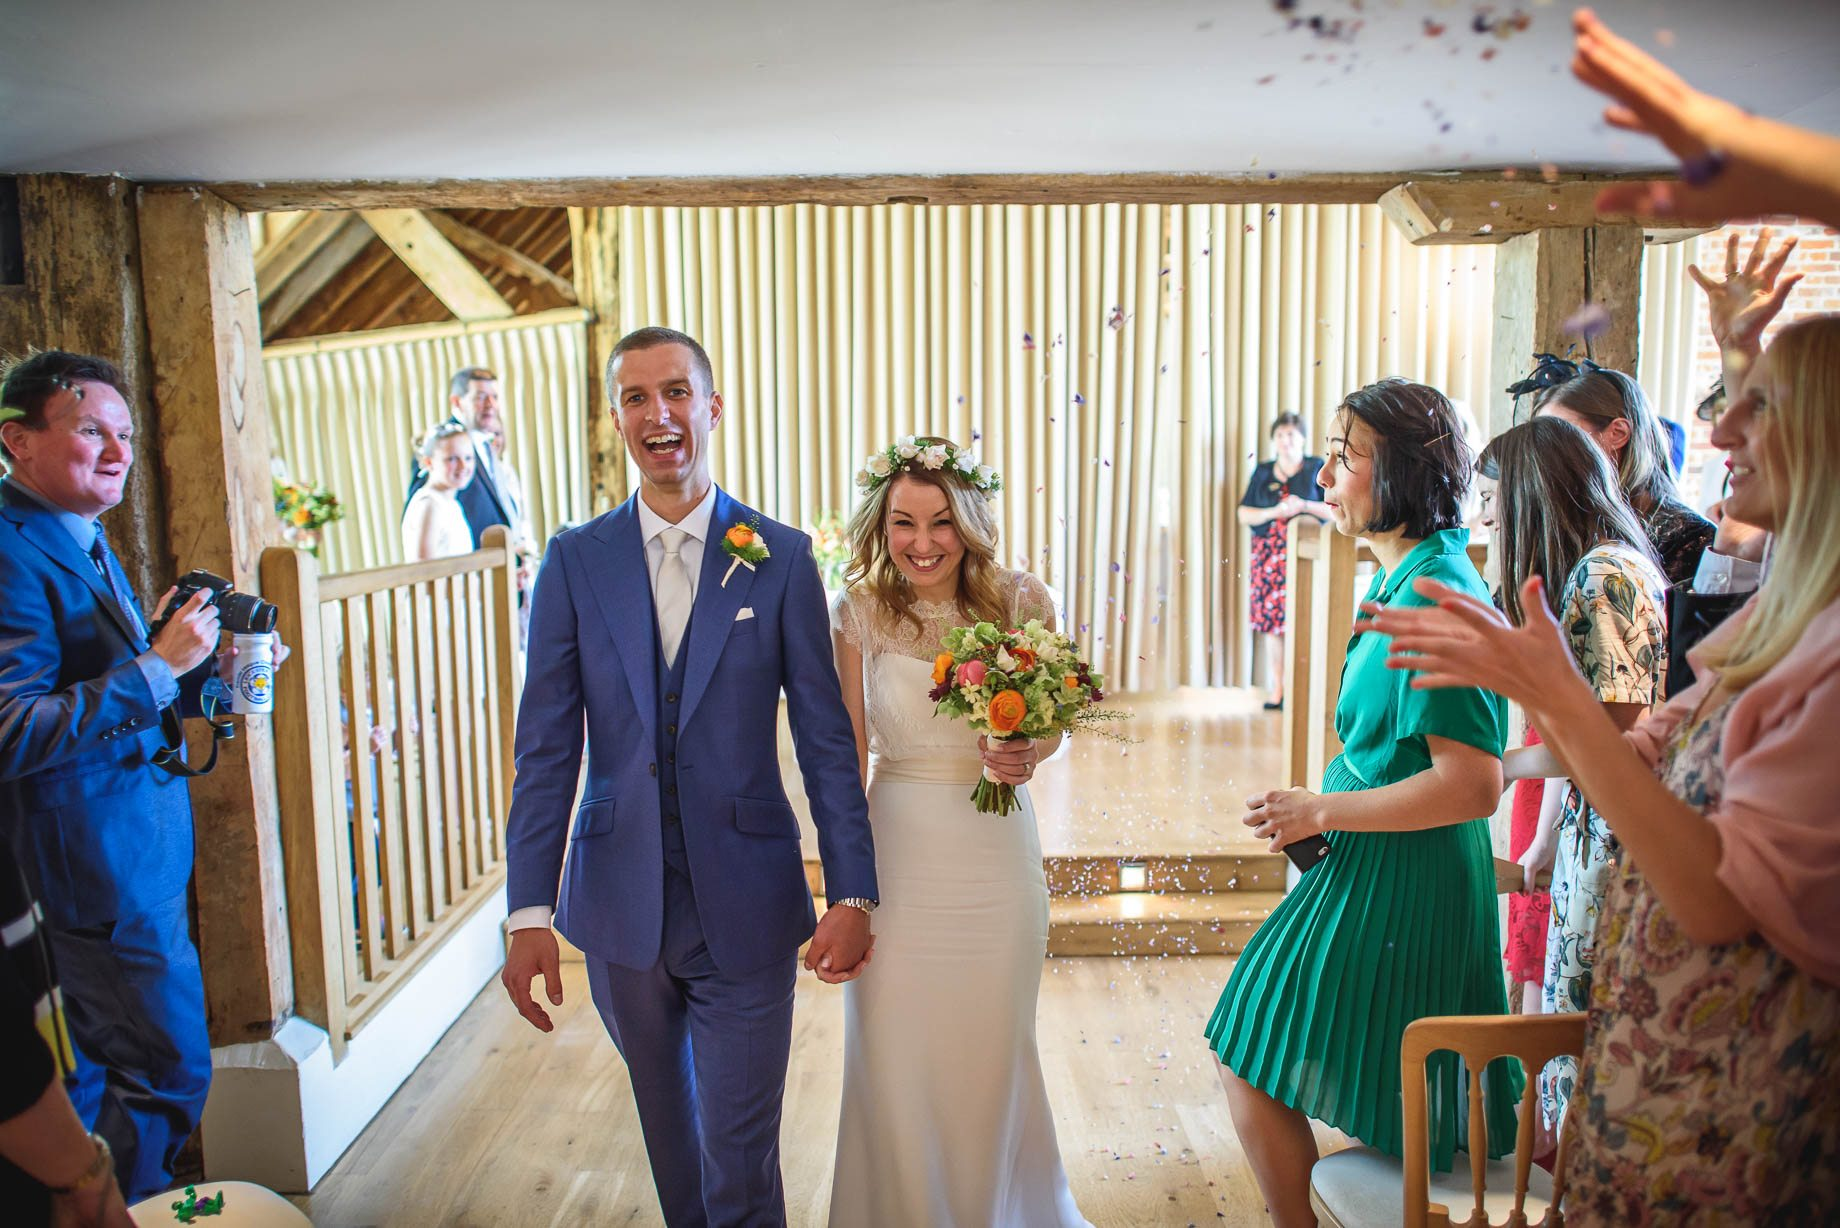 Bury Court Barn wedding photography by Guy Collier - Jo and Jamie (64 of 160)